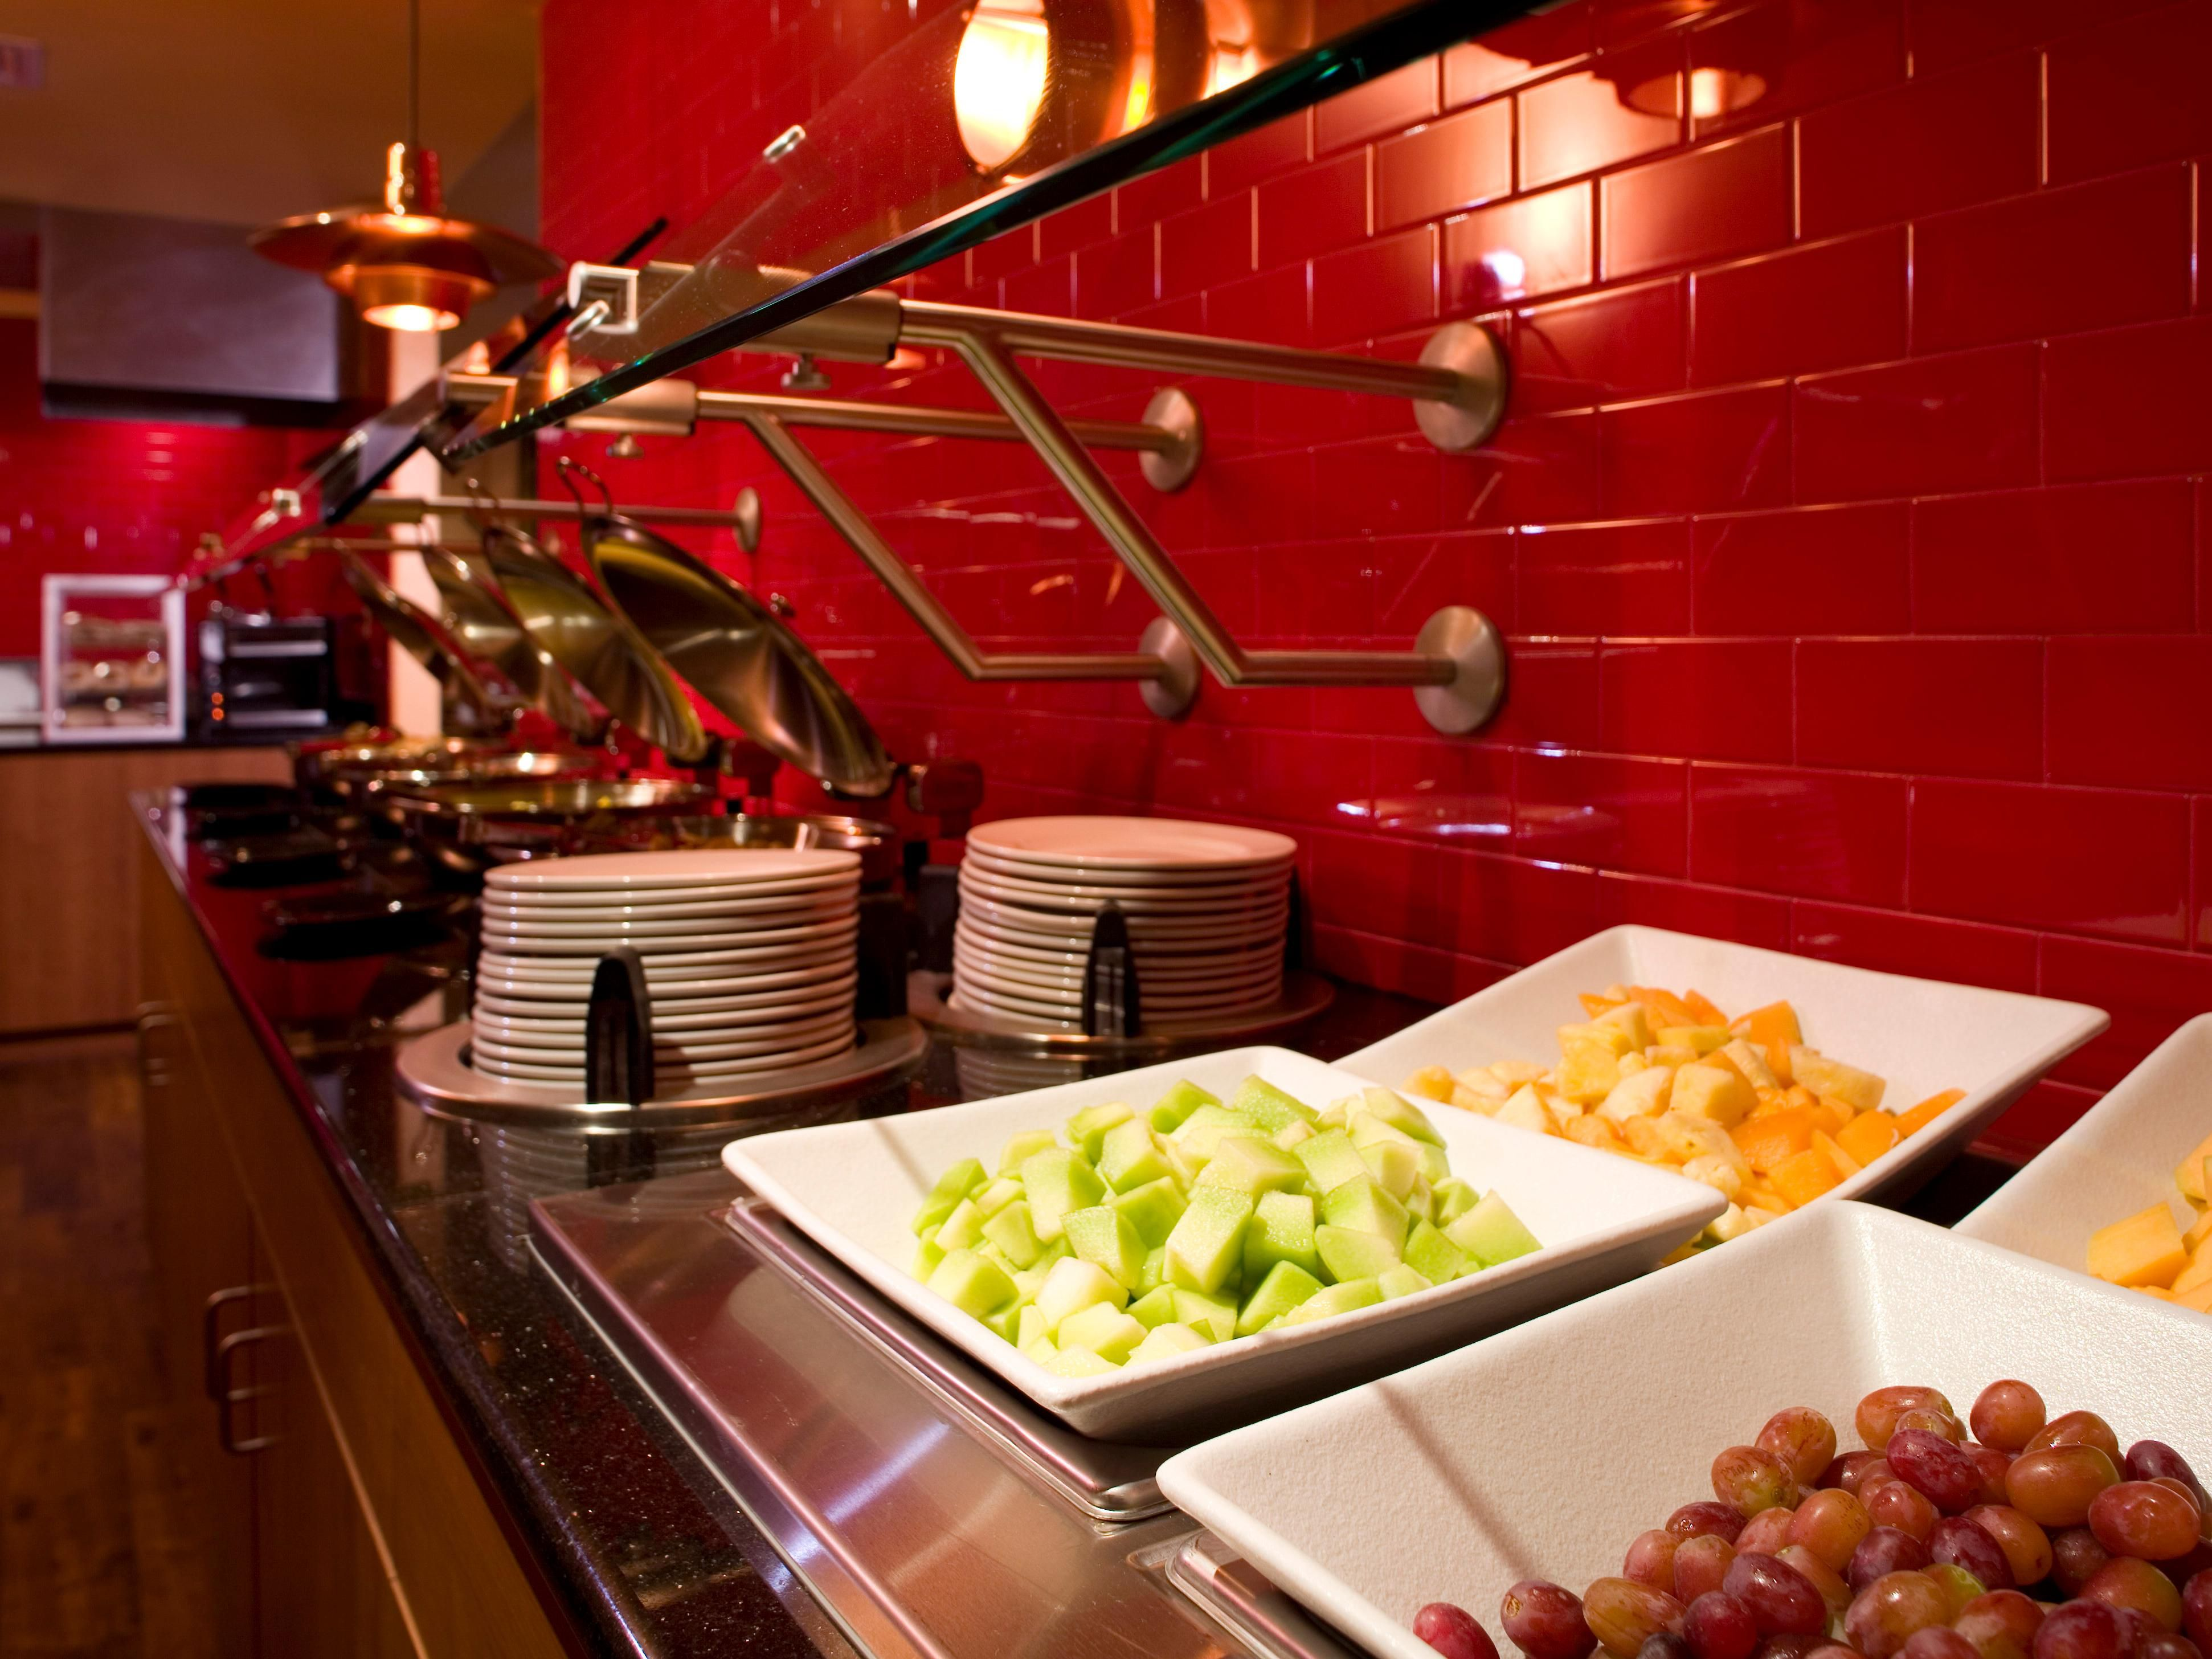 Start your day off right with hot breakfast from our Breakfast Bar